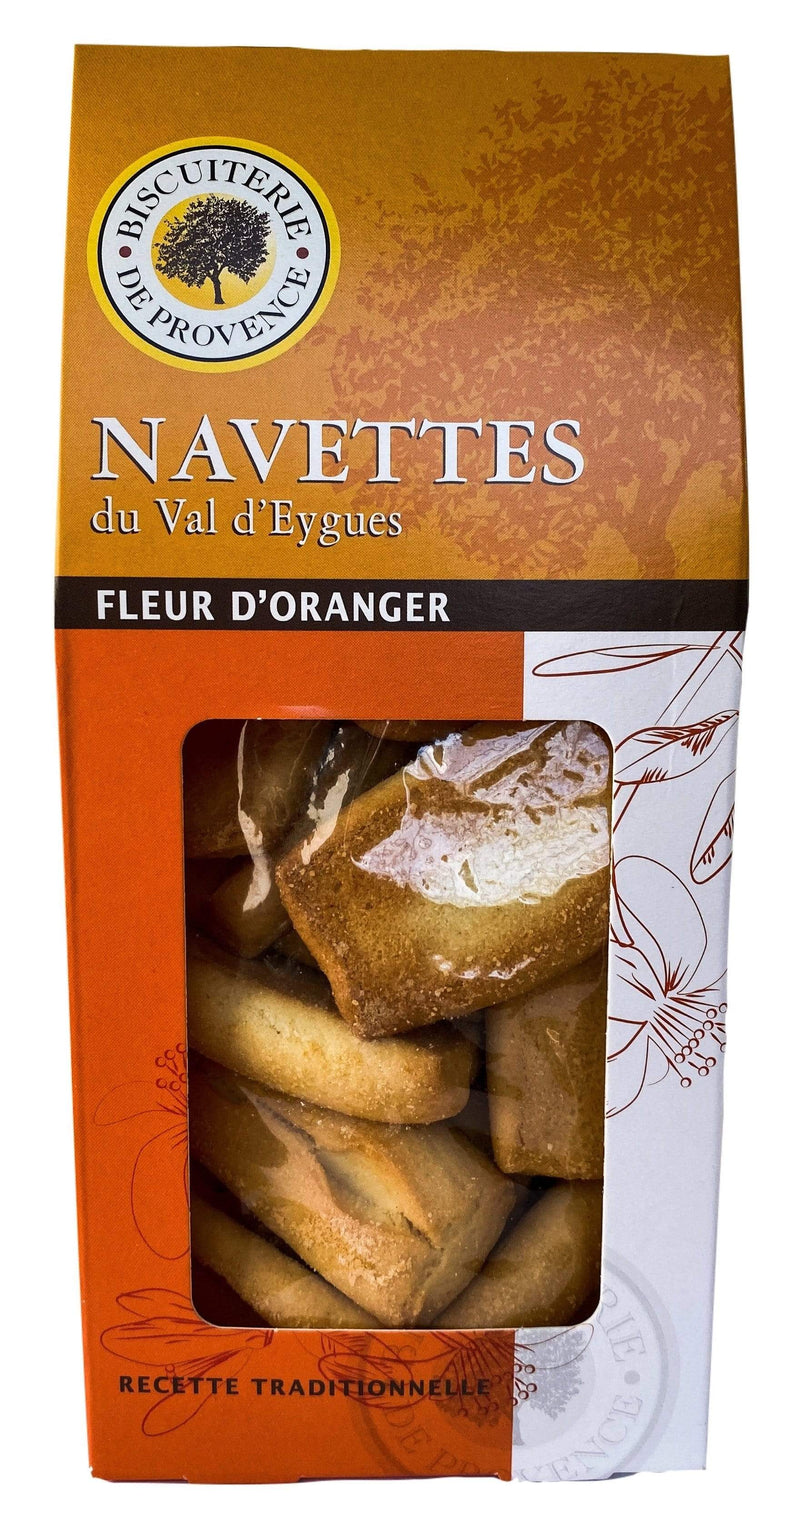 Biscuiterie de Provence cookie Orange Blossom Navettes